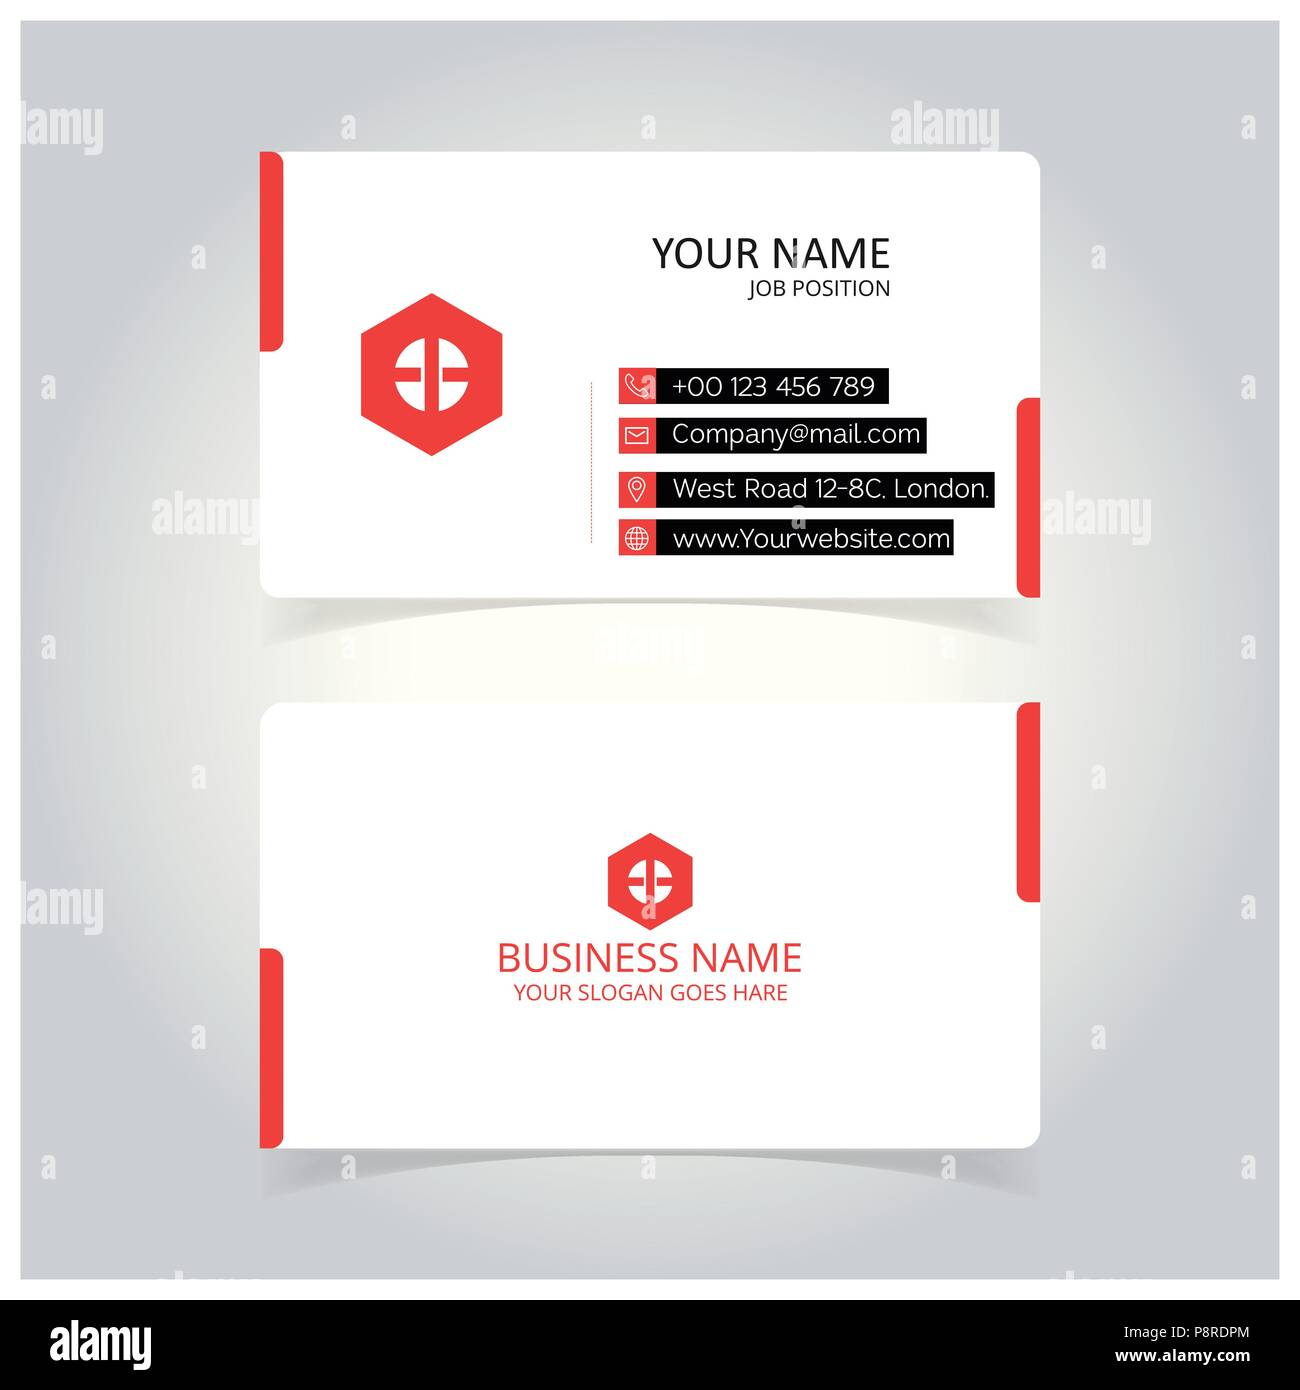 Creative Business Card Template For Web Design And Application Interface Also Useful For Infographics Vector Illustration Stock Vector Image Art Alamy